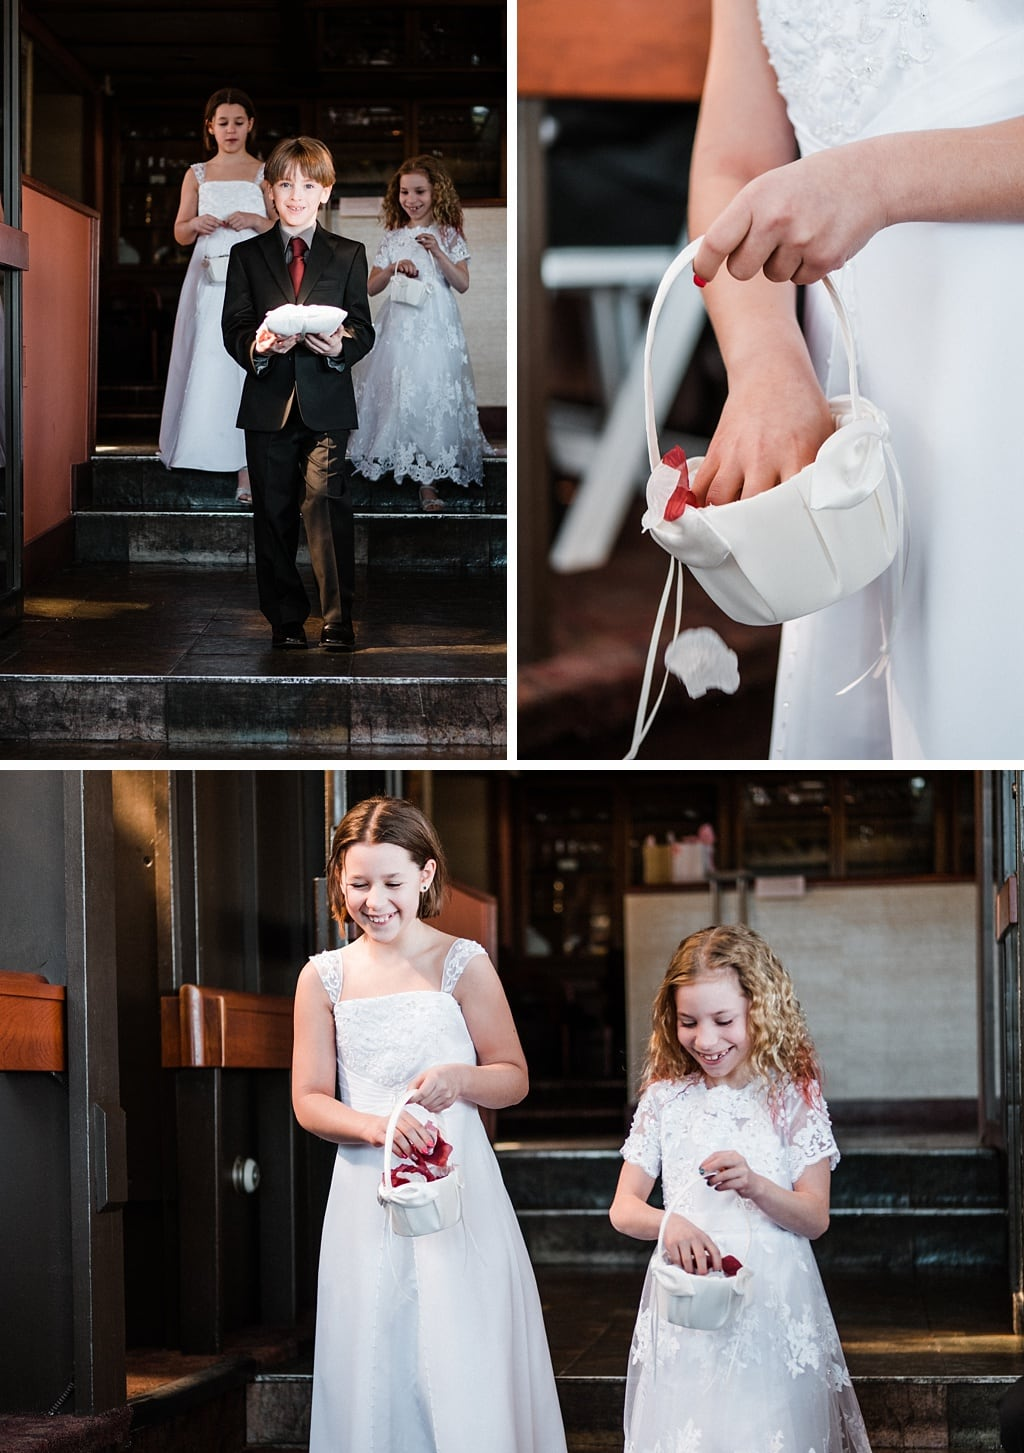 Flower girls and ring bearer walking into ceremony at Flagstaff House wedding in Boulder Colorado